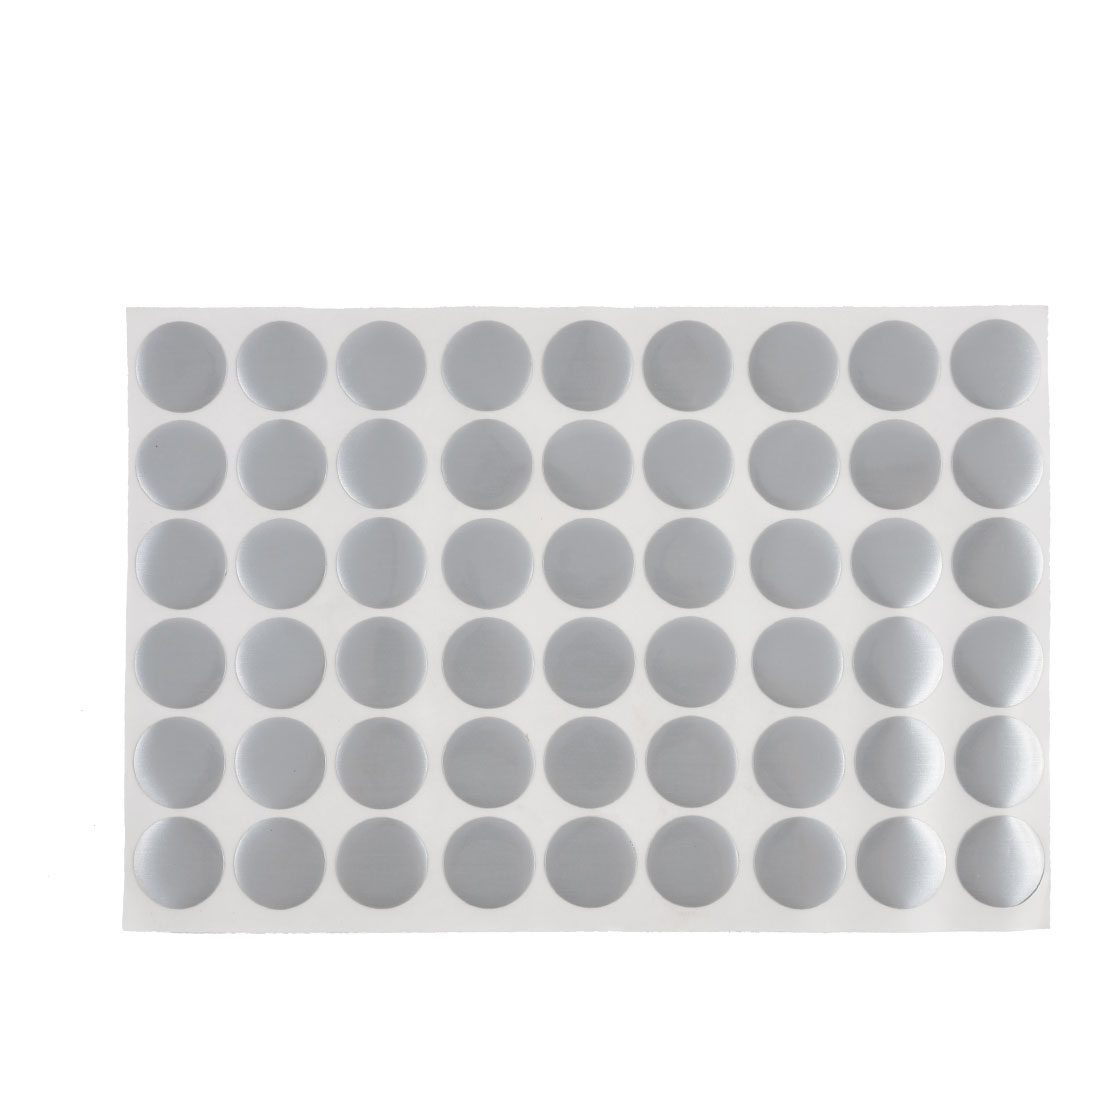 Polish Surface Self-adhesive Screw Hole Stickers Covers Sheet Gray 54 in 1